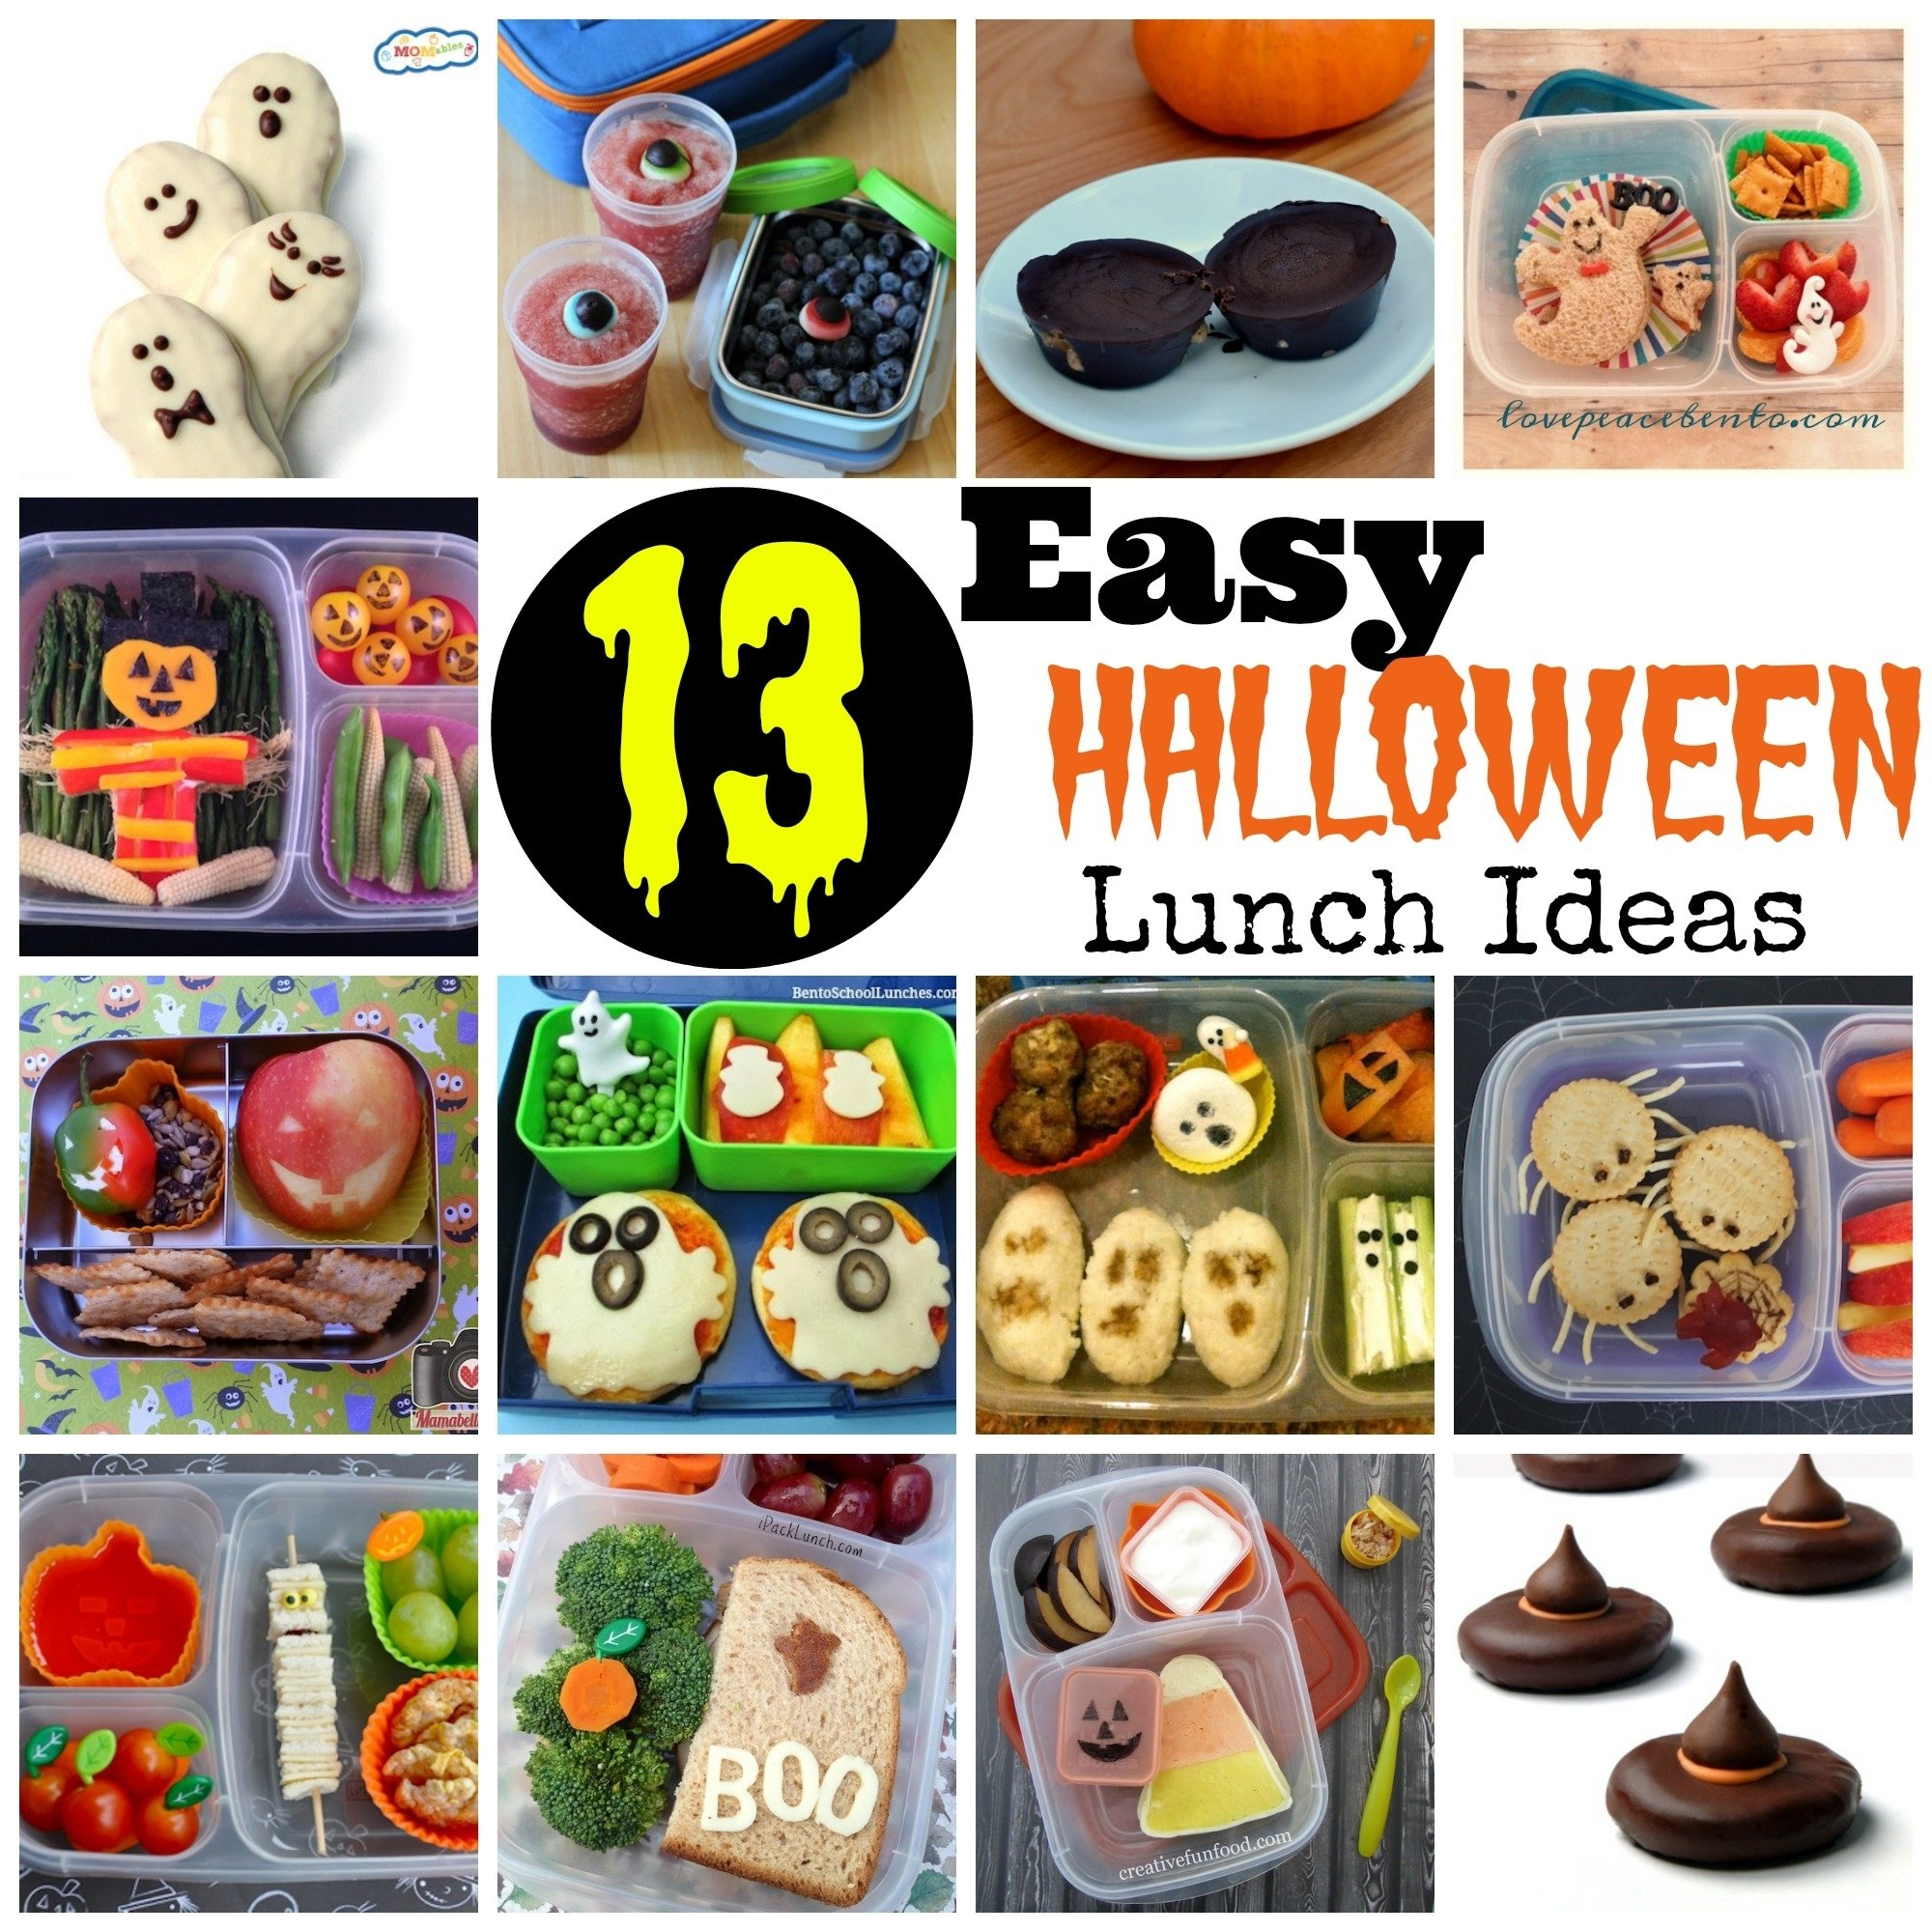 10 Most Recommended Halloween Lunch Ideas For Kids 13 easy halloween lunch ideas 2 2021